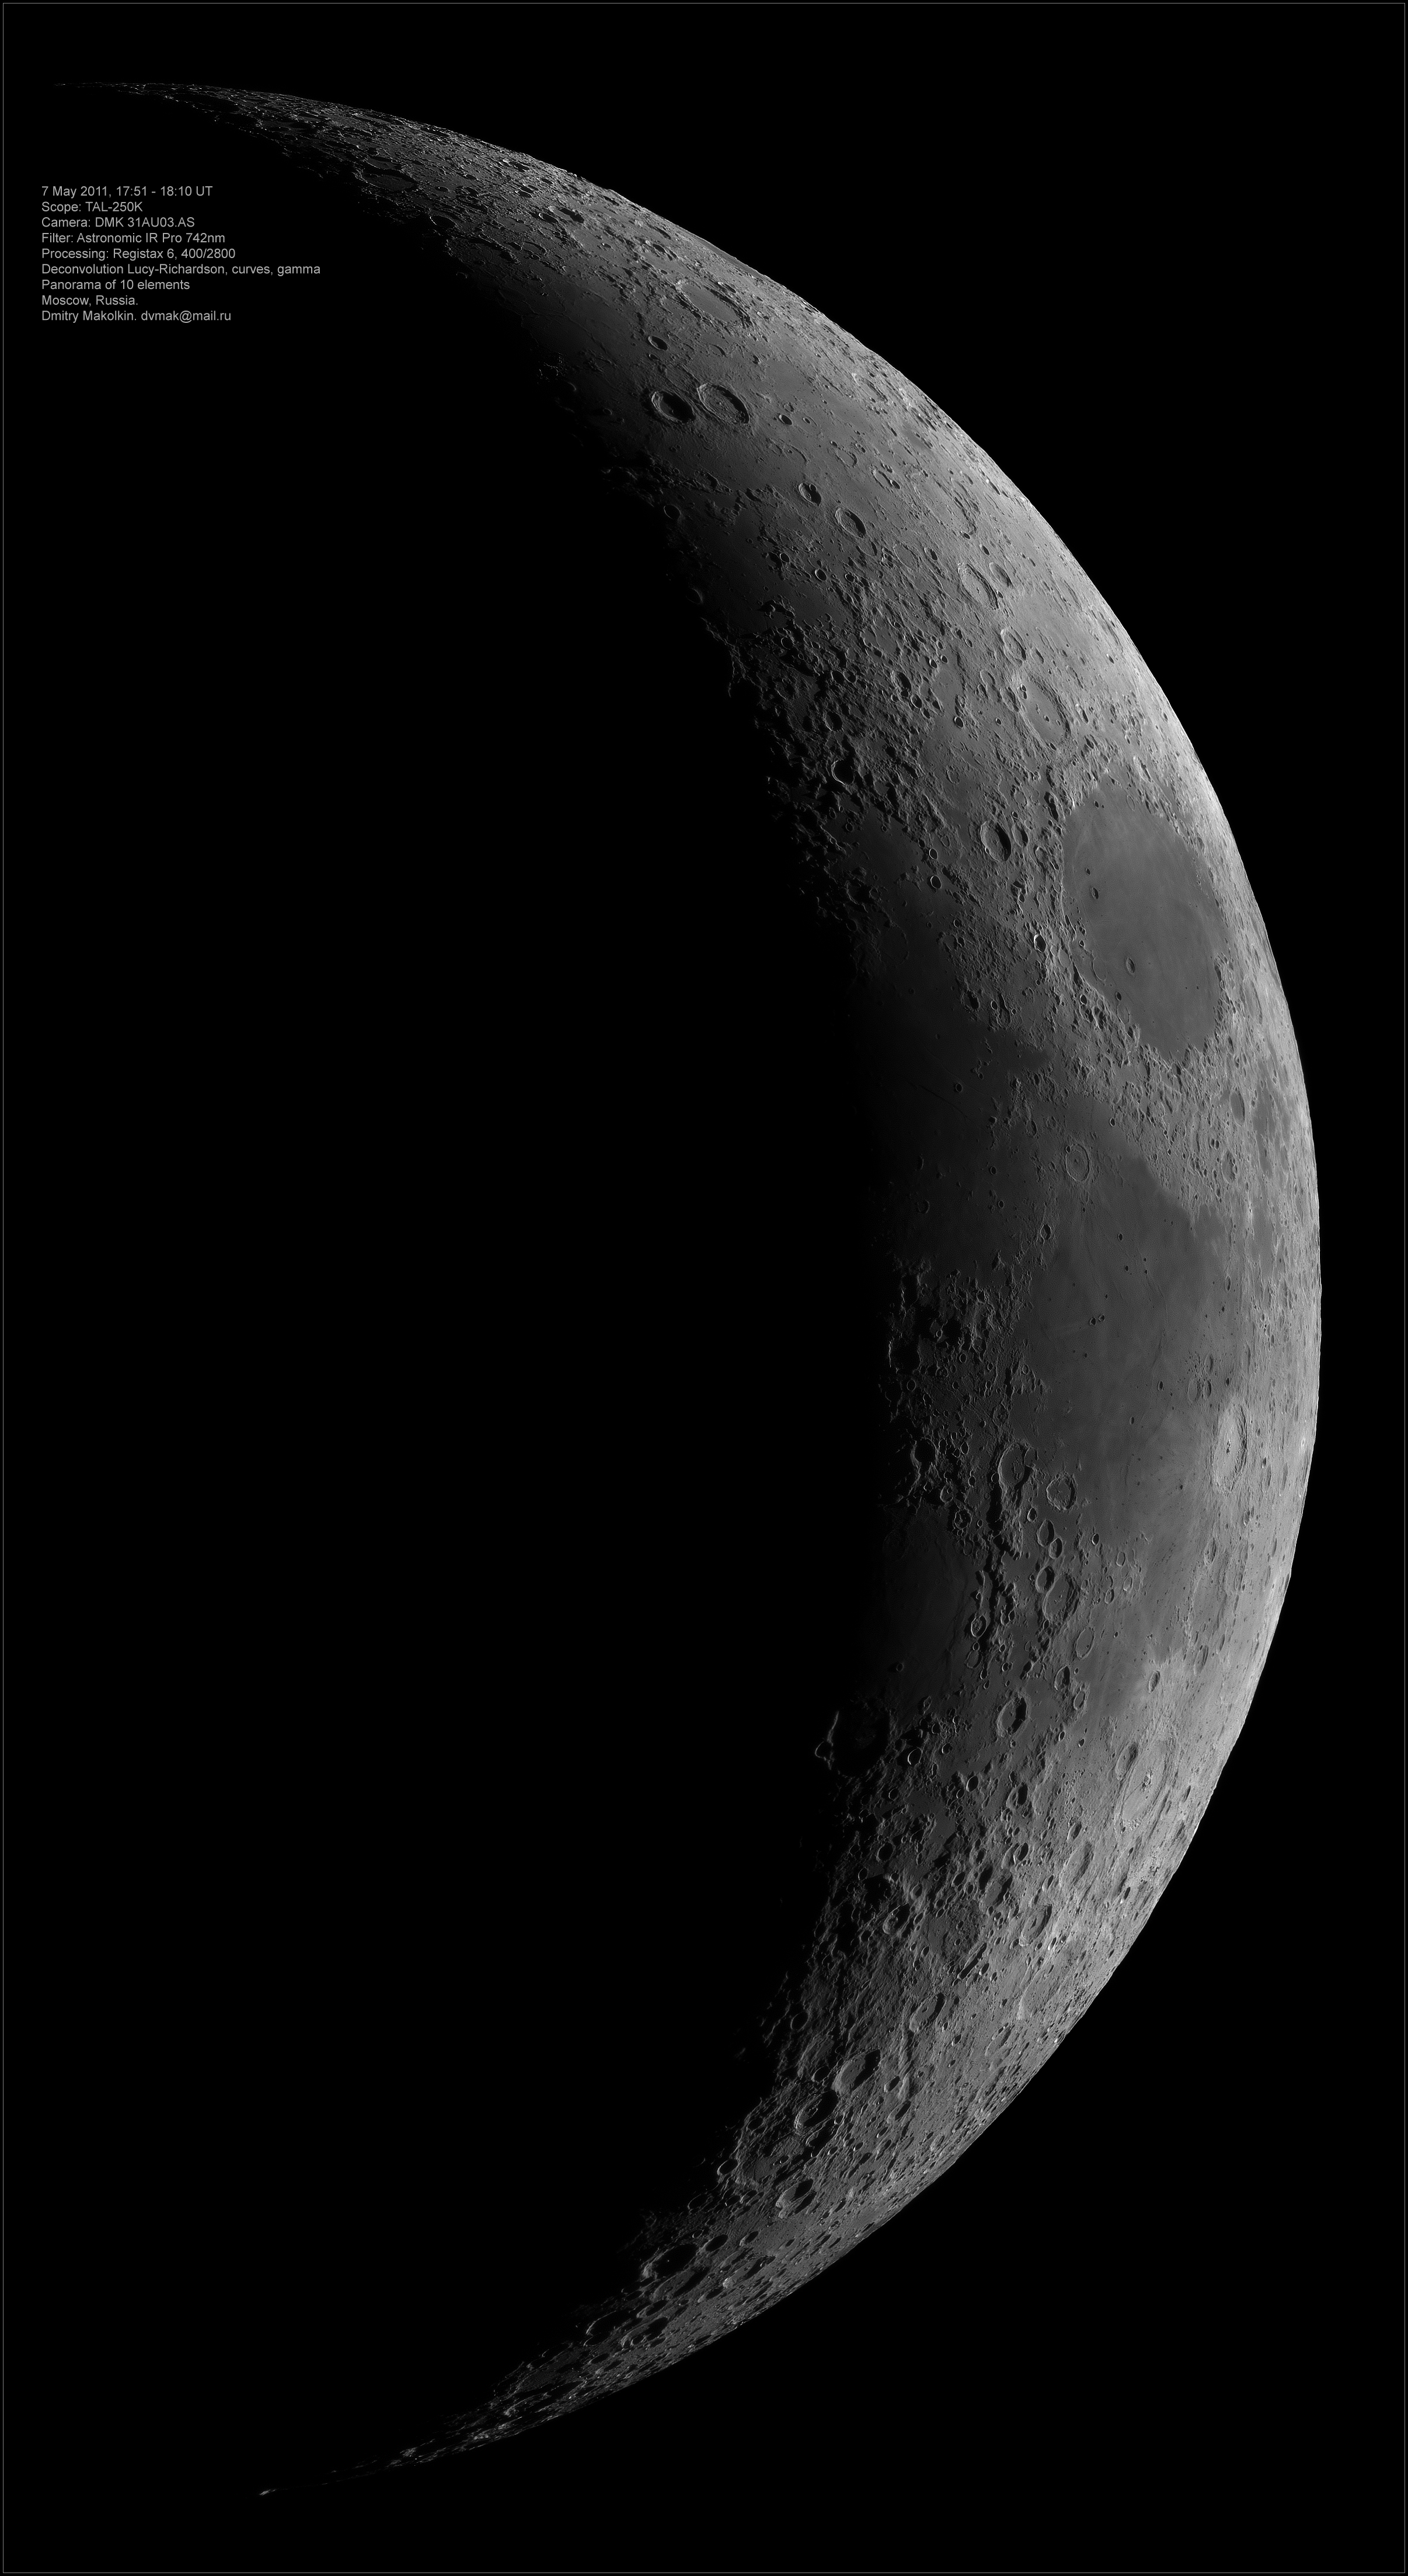 Moon panorama, 7 May 2011 by Dmitry Makolkin